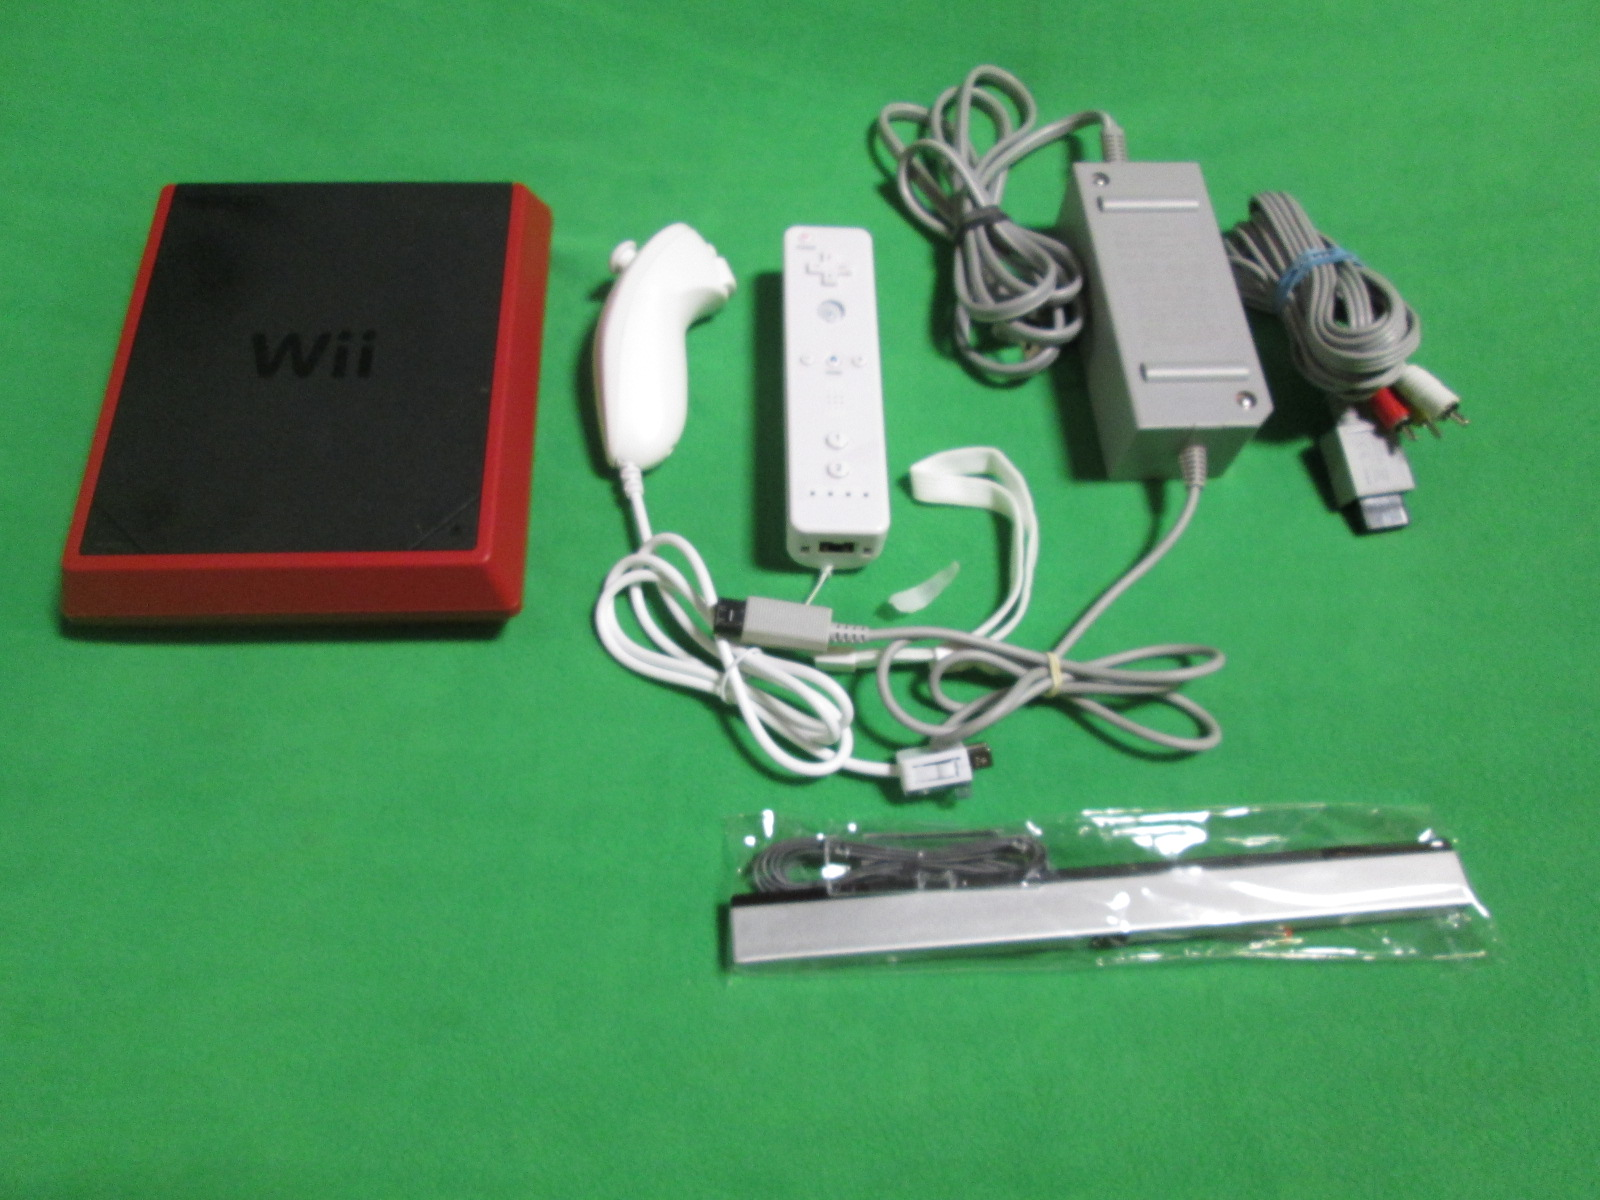 Image 0 of Nintendo Wii 8GB Mini Red/black Video Game Console Home System RVL-201